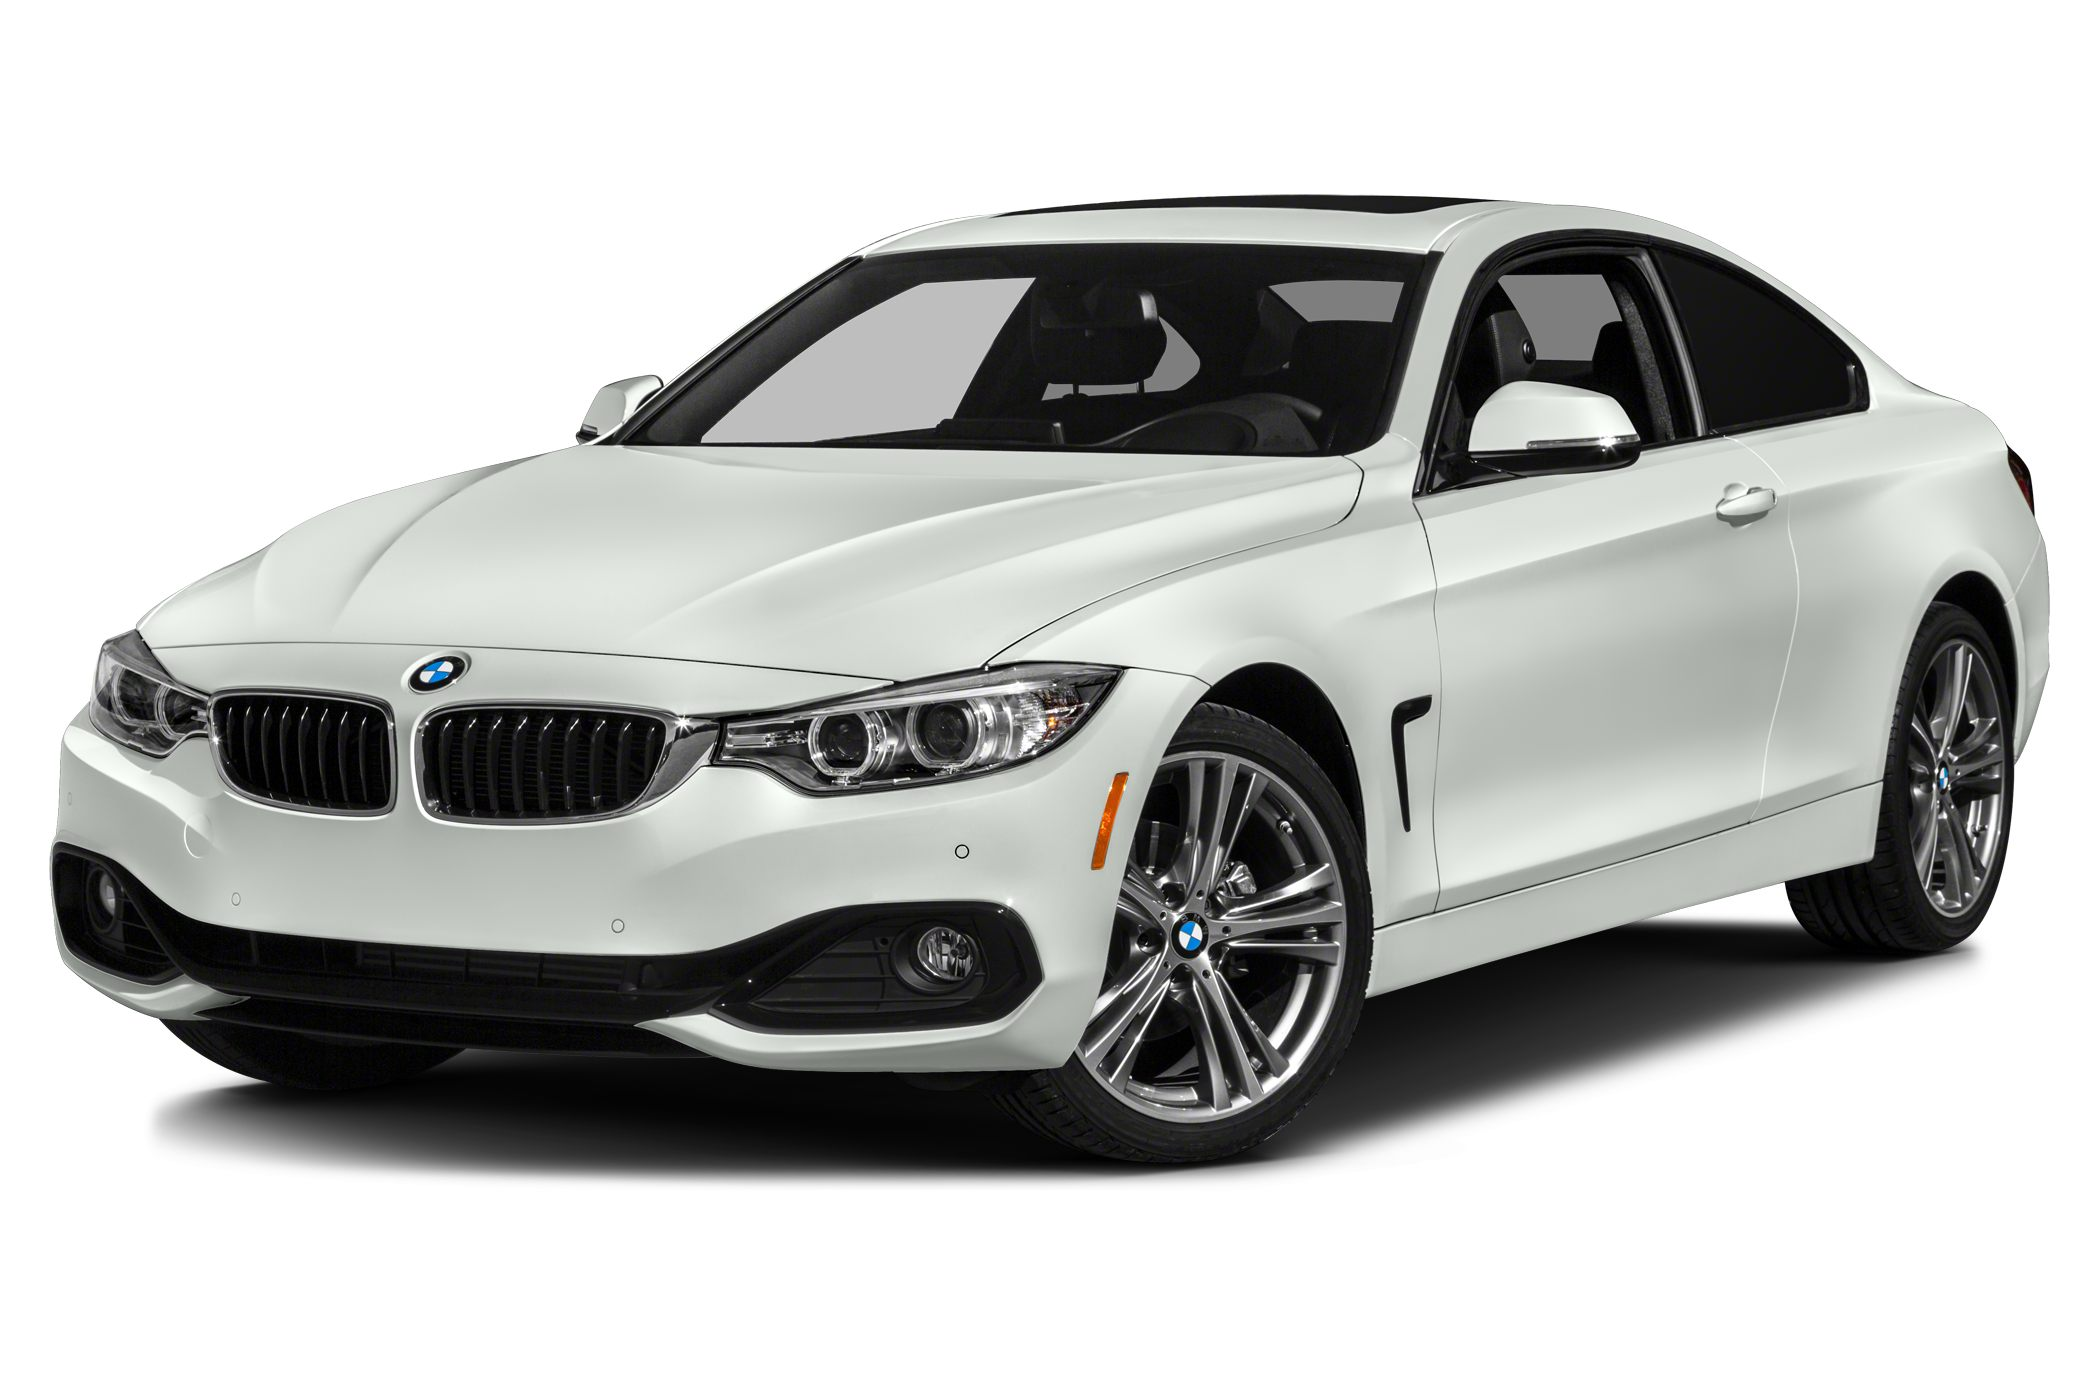 review your bmw girlfriend ex sale for sexy overpriced reviews